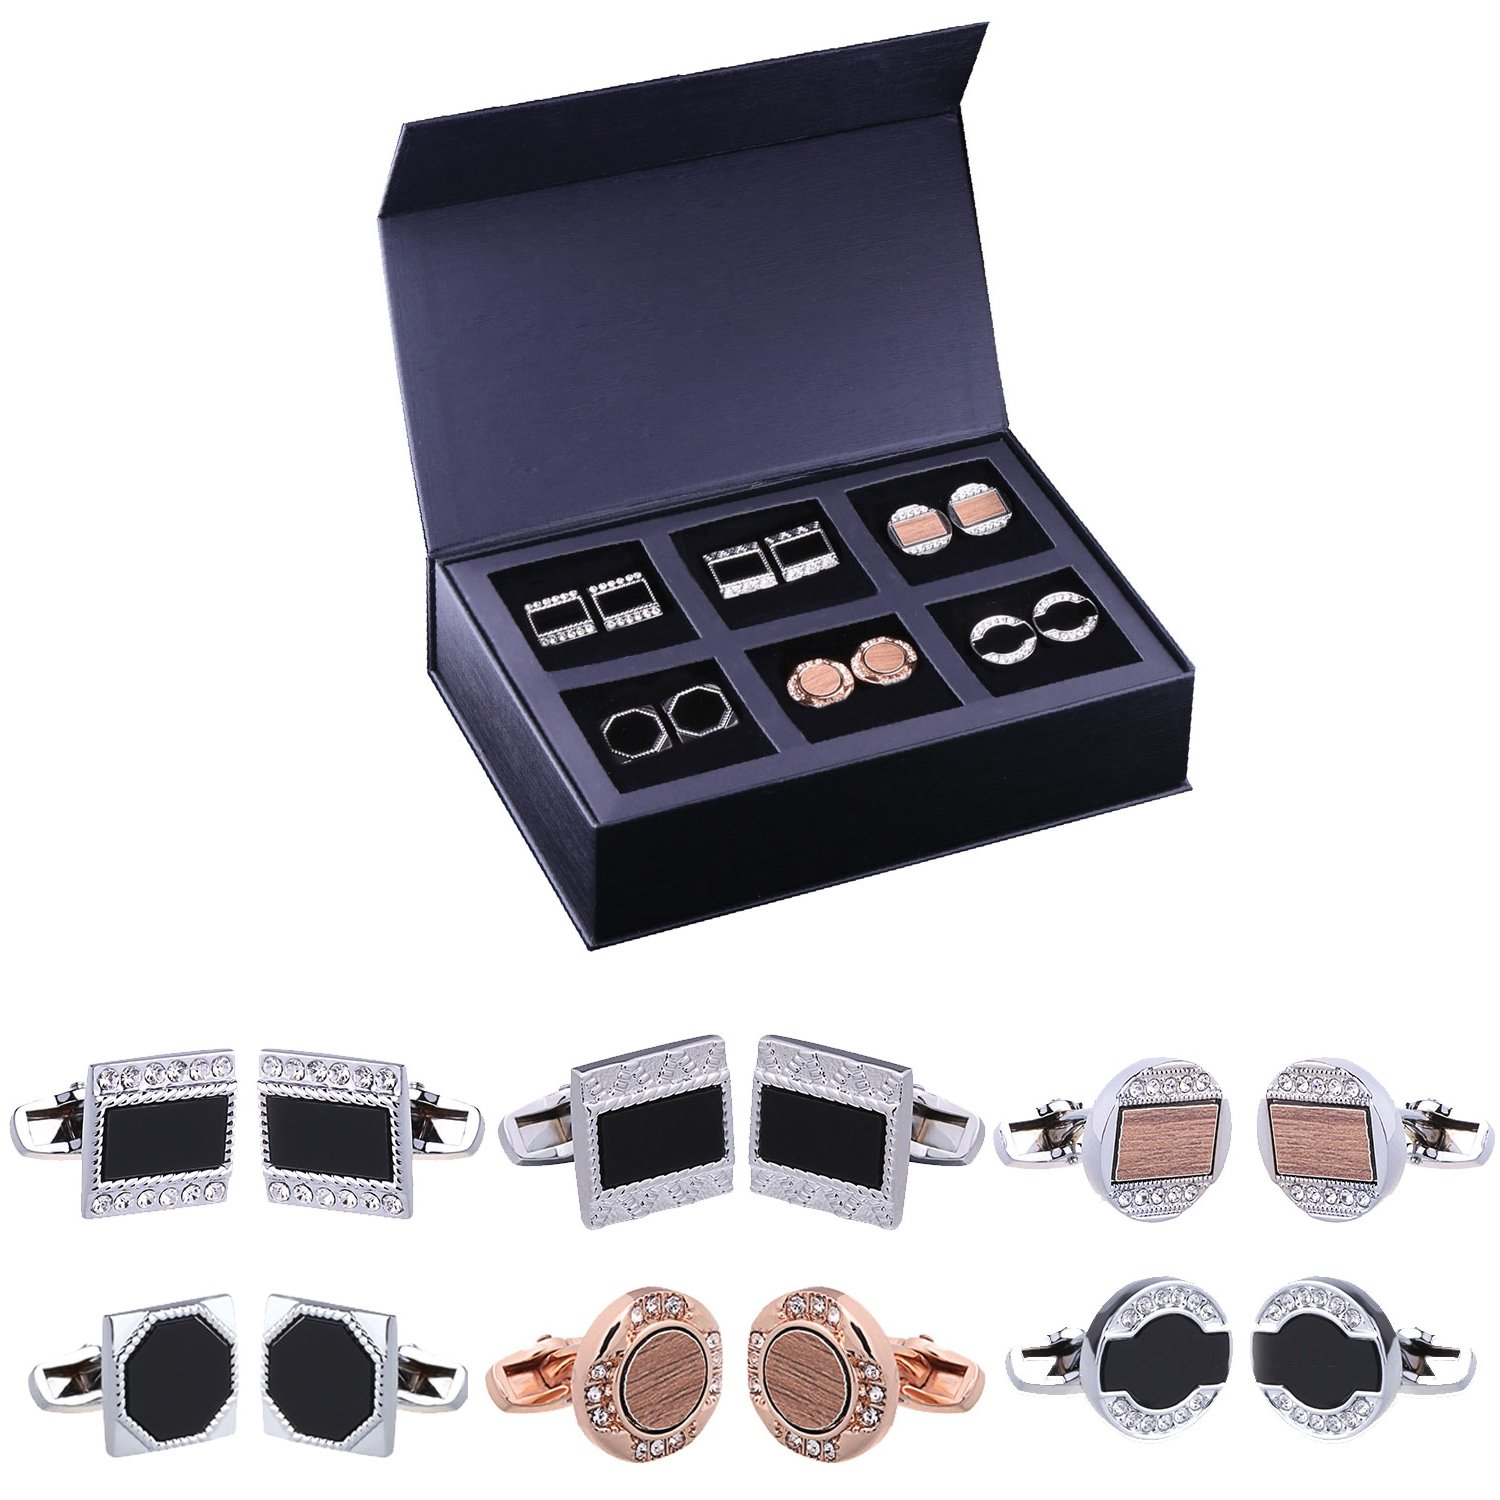 Edwardian Men's Accessories BodyJ4You 12PC Cufflinks Button Shirt Men Black Silvertone Goldtone Jewelry Set Gift Box 6 Pairs $19.99 AT vintagedancer.com